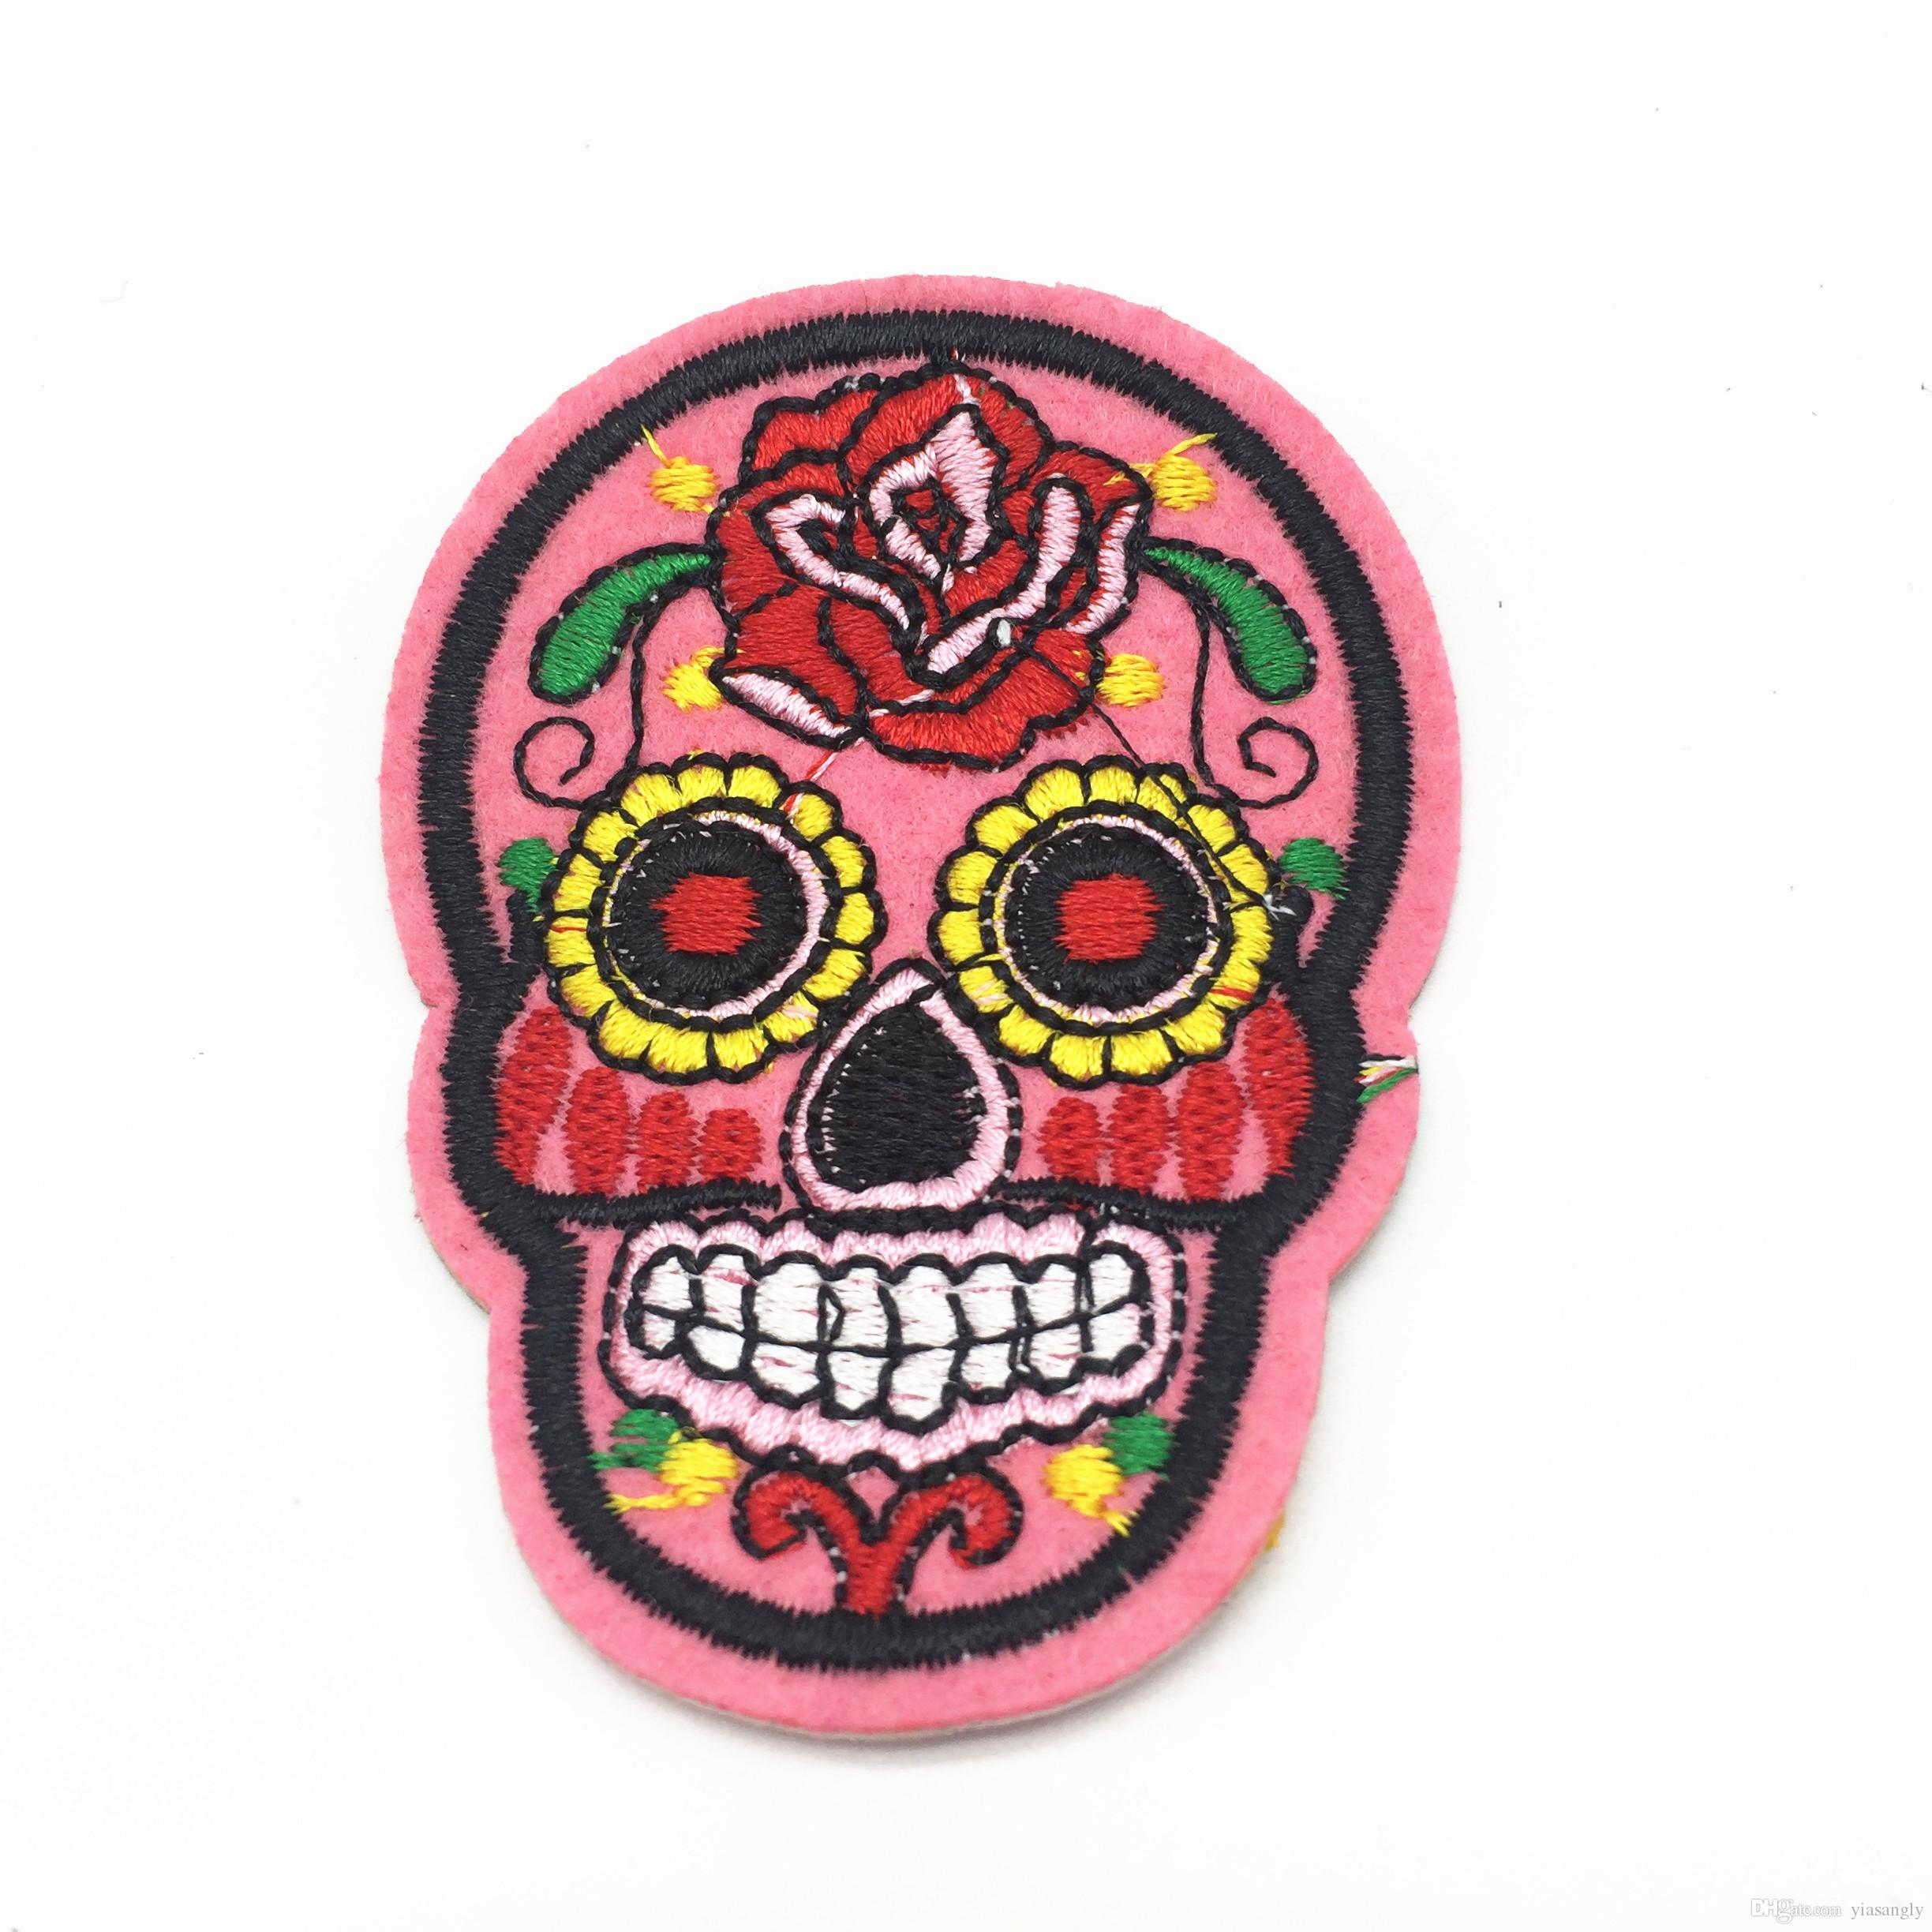 20pcs Pink Skull Clothes Patch DIY Skeleton Embroidered Patches Iron On Fabric Badges Sew On Cloth Stickers